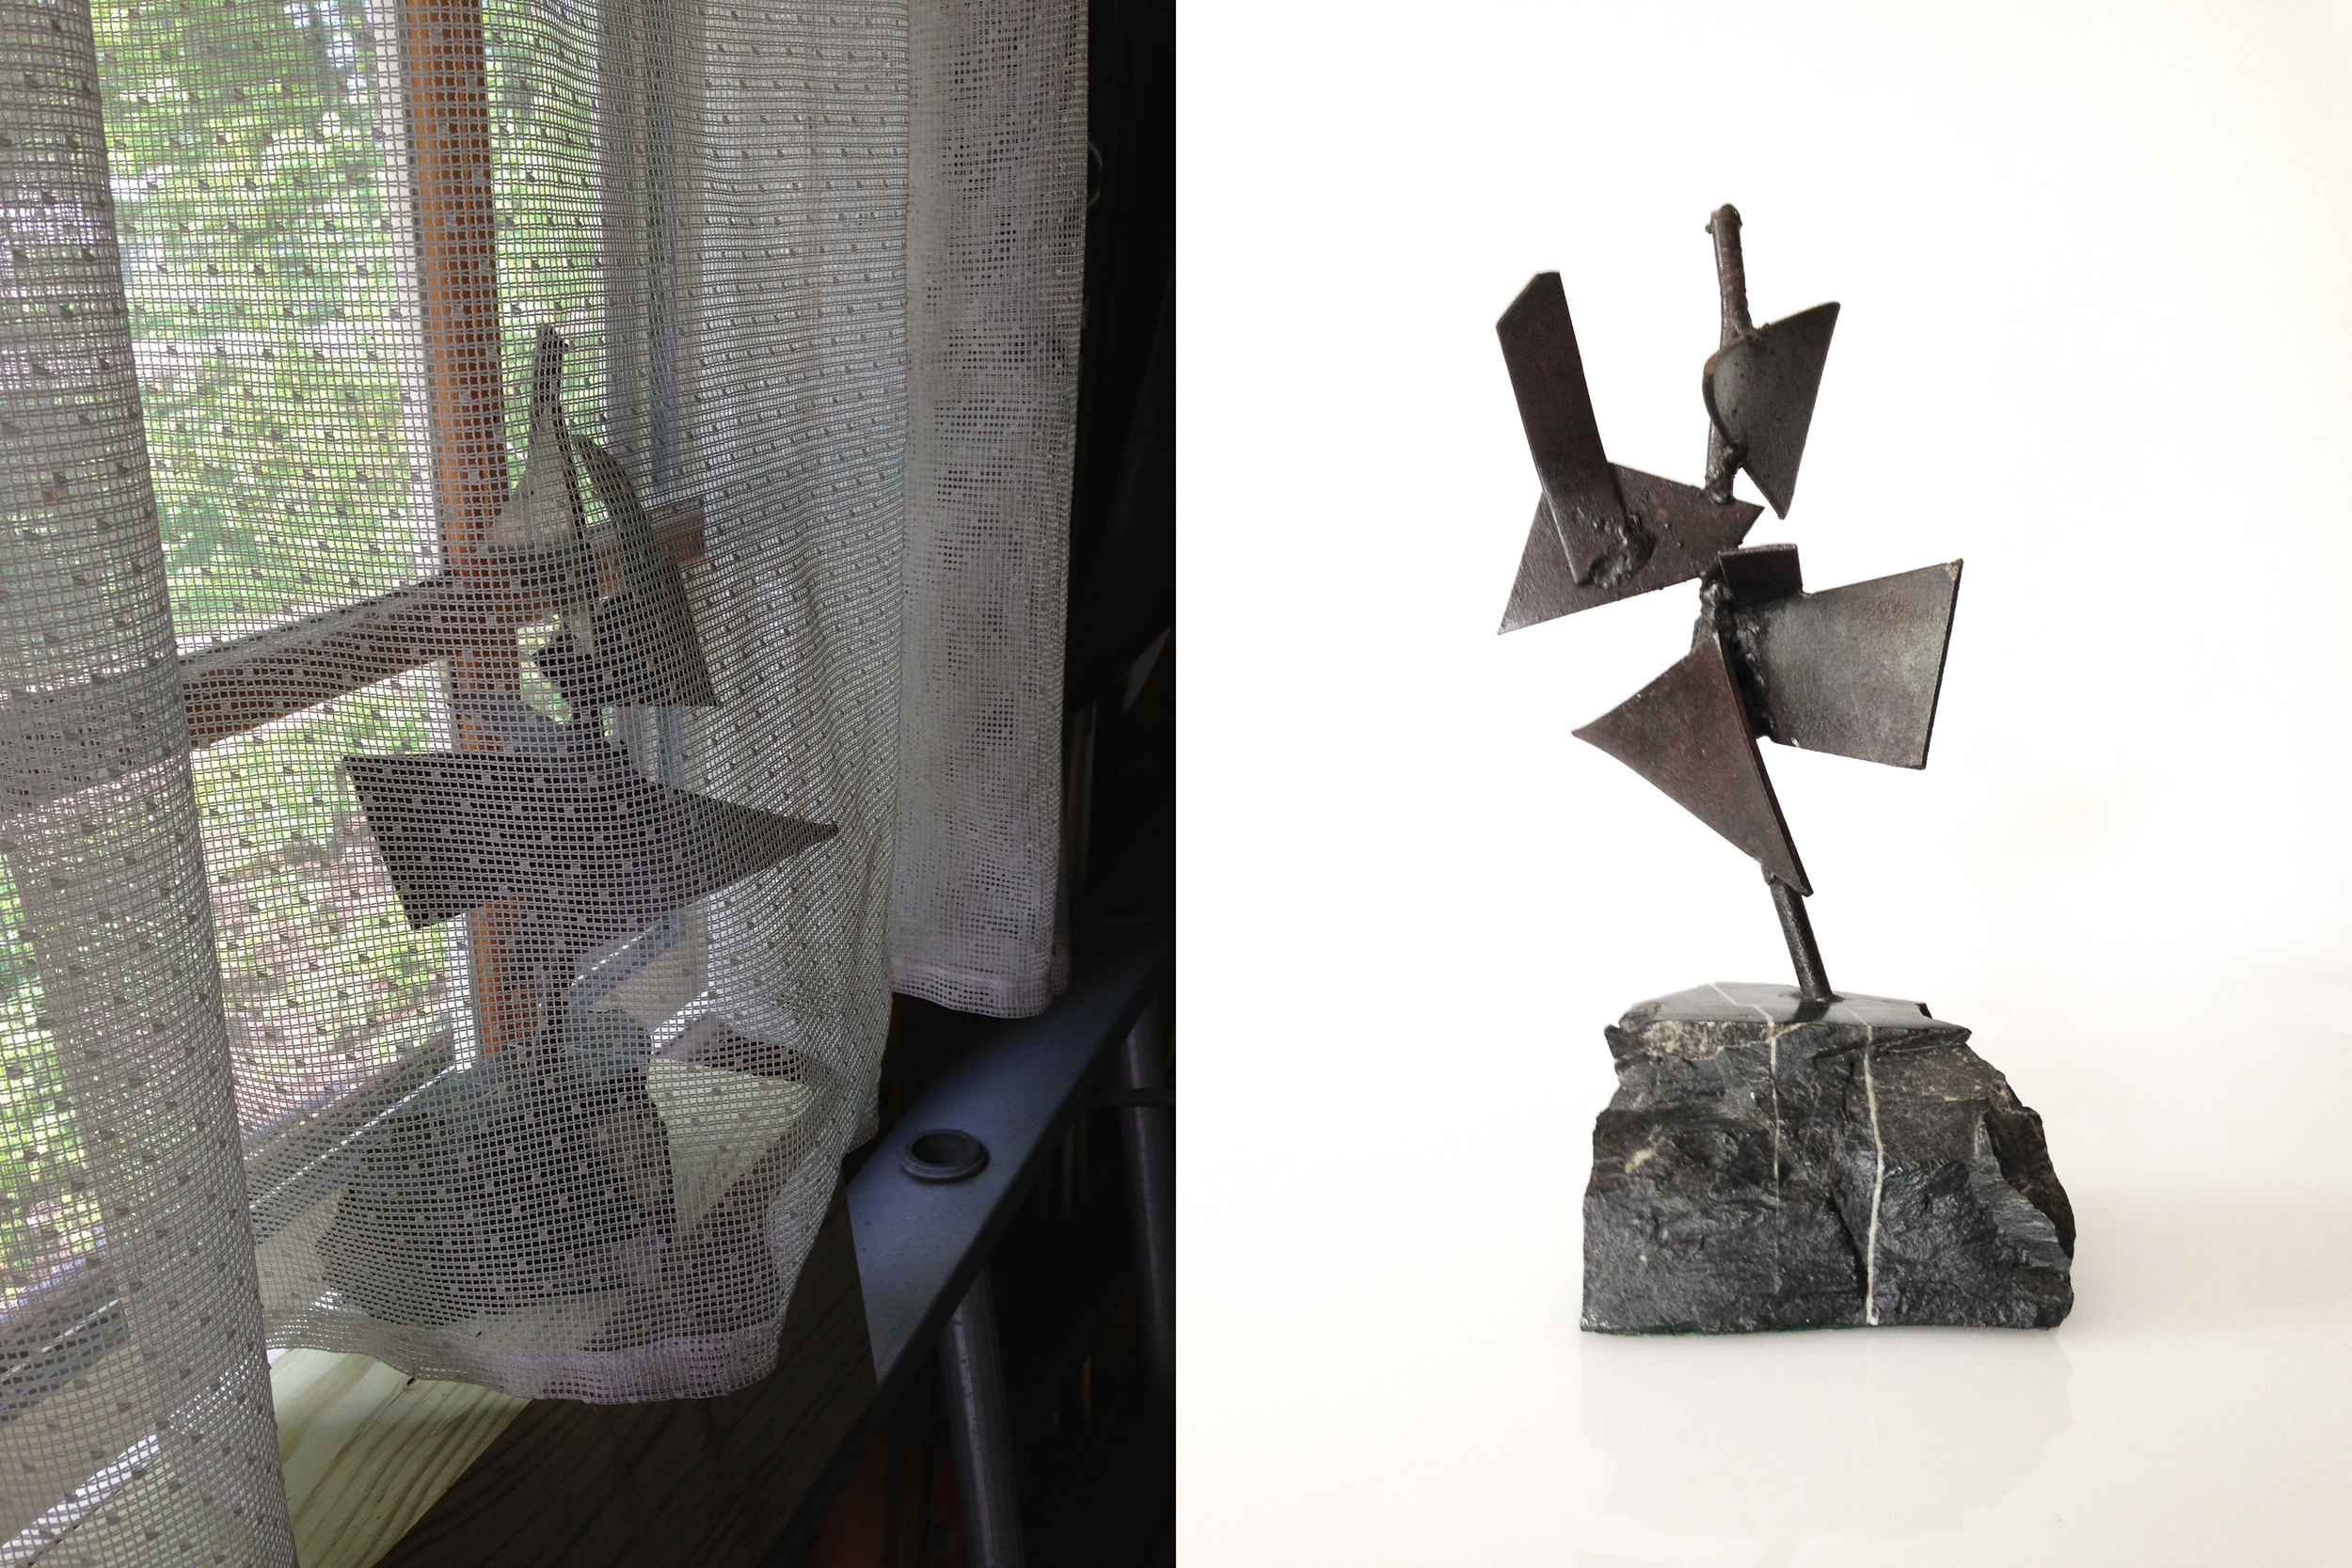 Someone tried to hide this interesting brutalist sculpture on the windowsill of the garage. I spotted it.